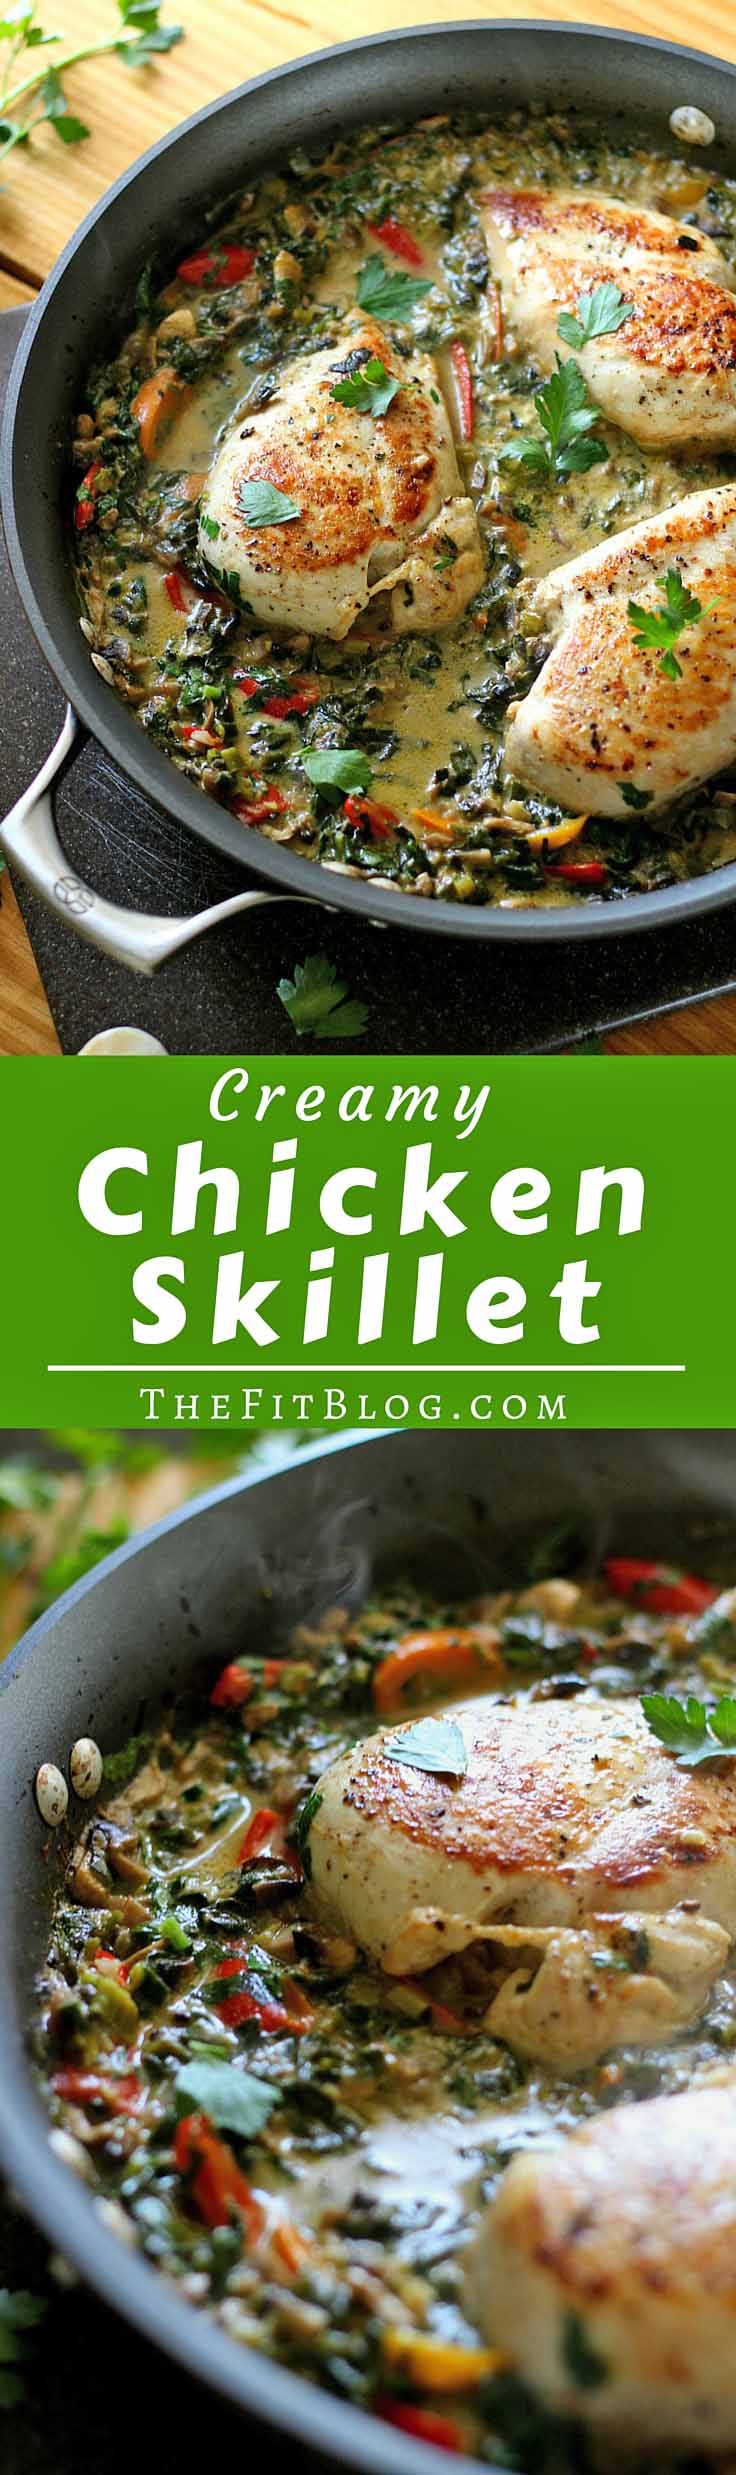 Smothered Creamy Skillet Chicken – This recipe is the perfect mix of healthy and delicious! It's creamy and flavorful while still being high-protein, low-carb, and low-fat {Gluten-Free, Clean Eating, Diabetes Friendly}